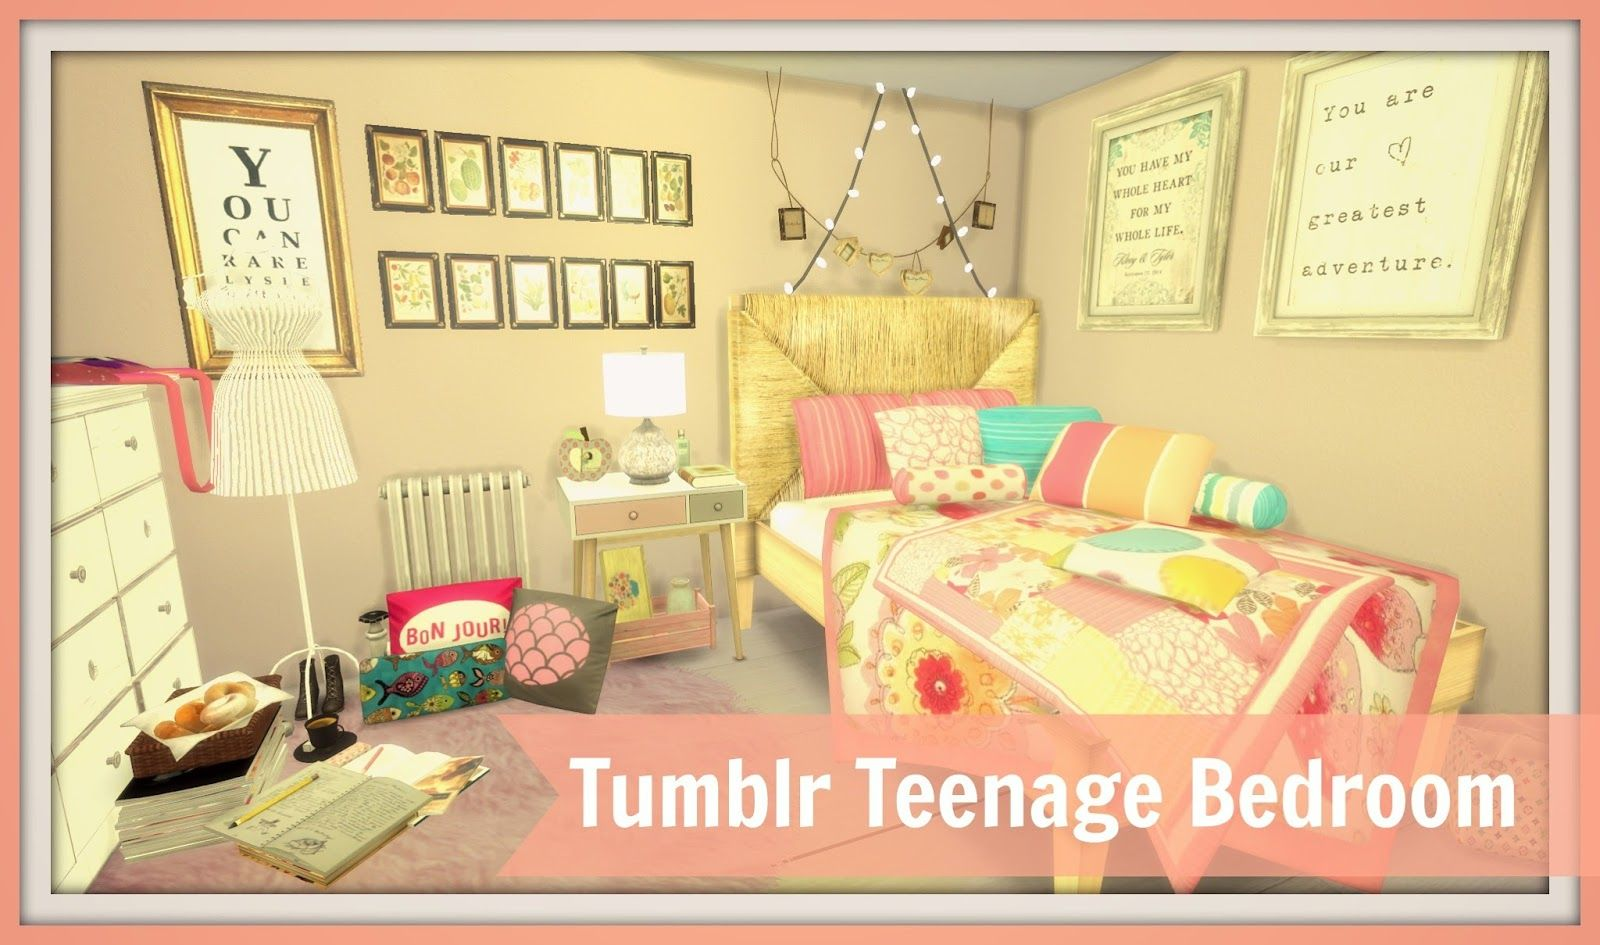 Sims 4 Tumblr Teenage Bedroom Dinha S4cc To Download